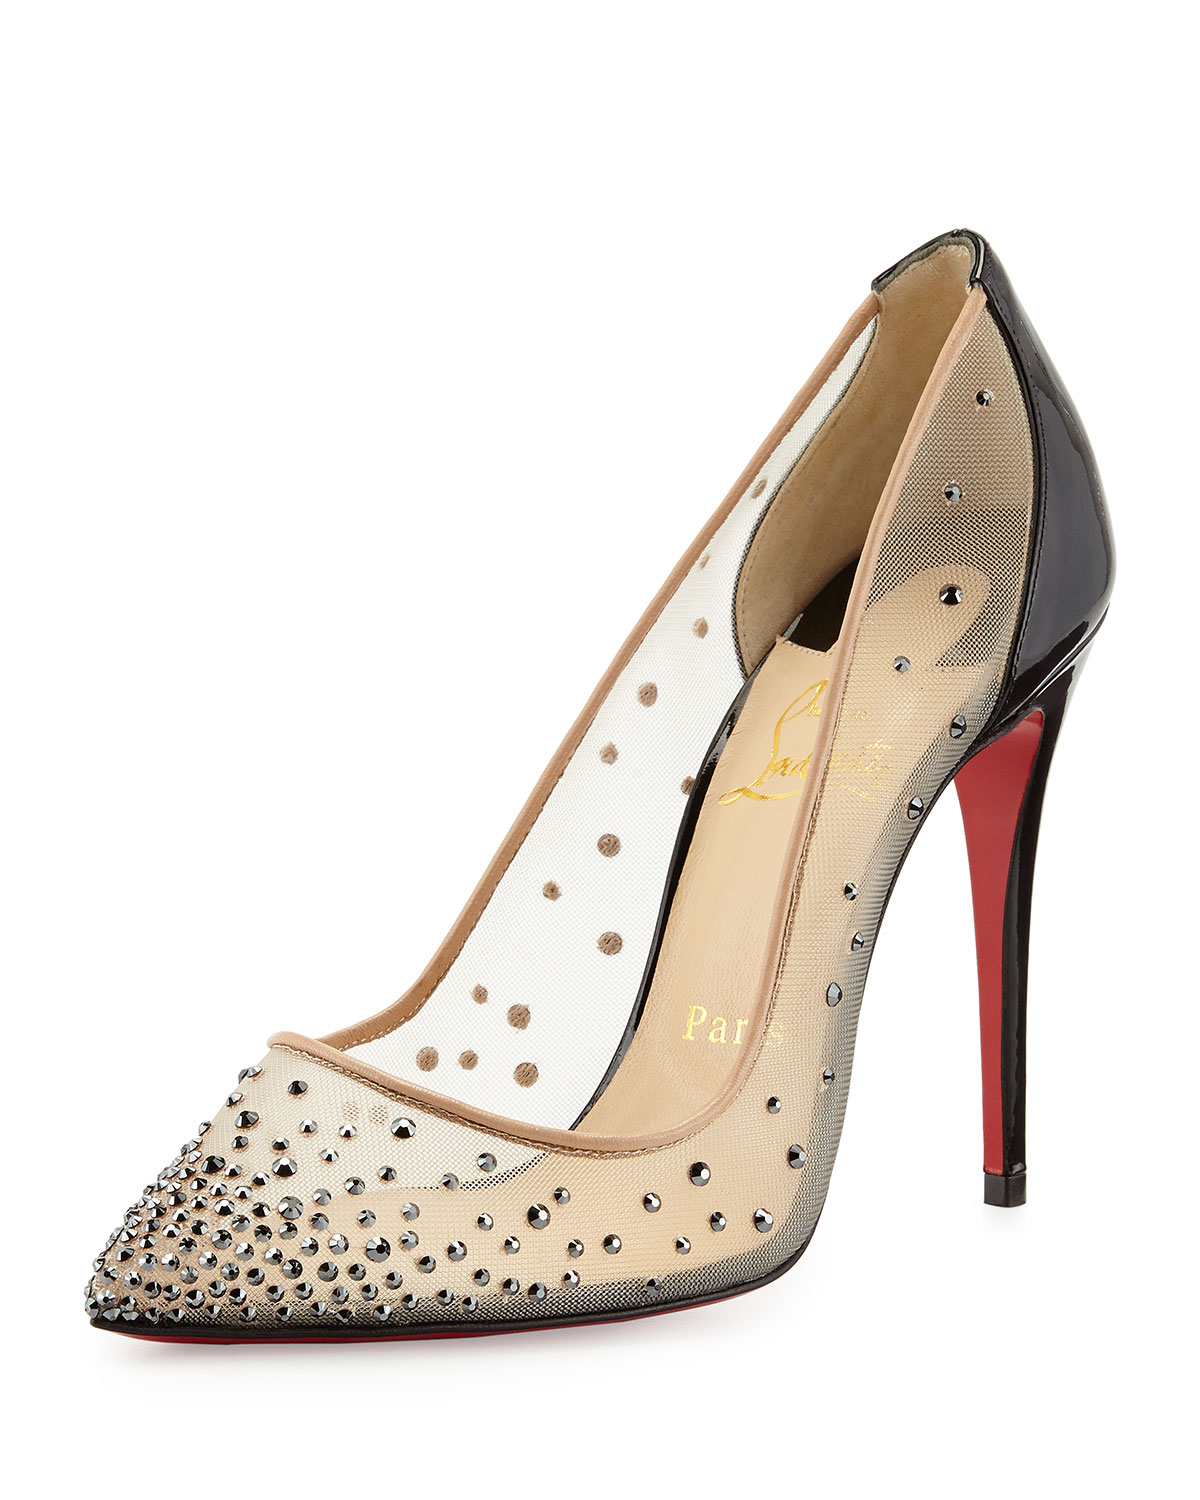 65921e7e8f Christian Louboutin Follies Crystal Mesh Red Sole Pump in Natural - Lyst